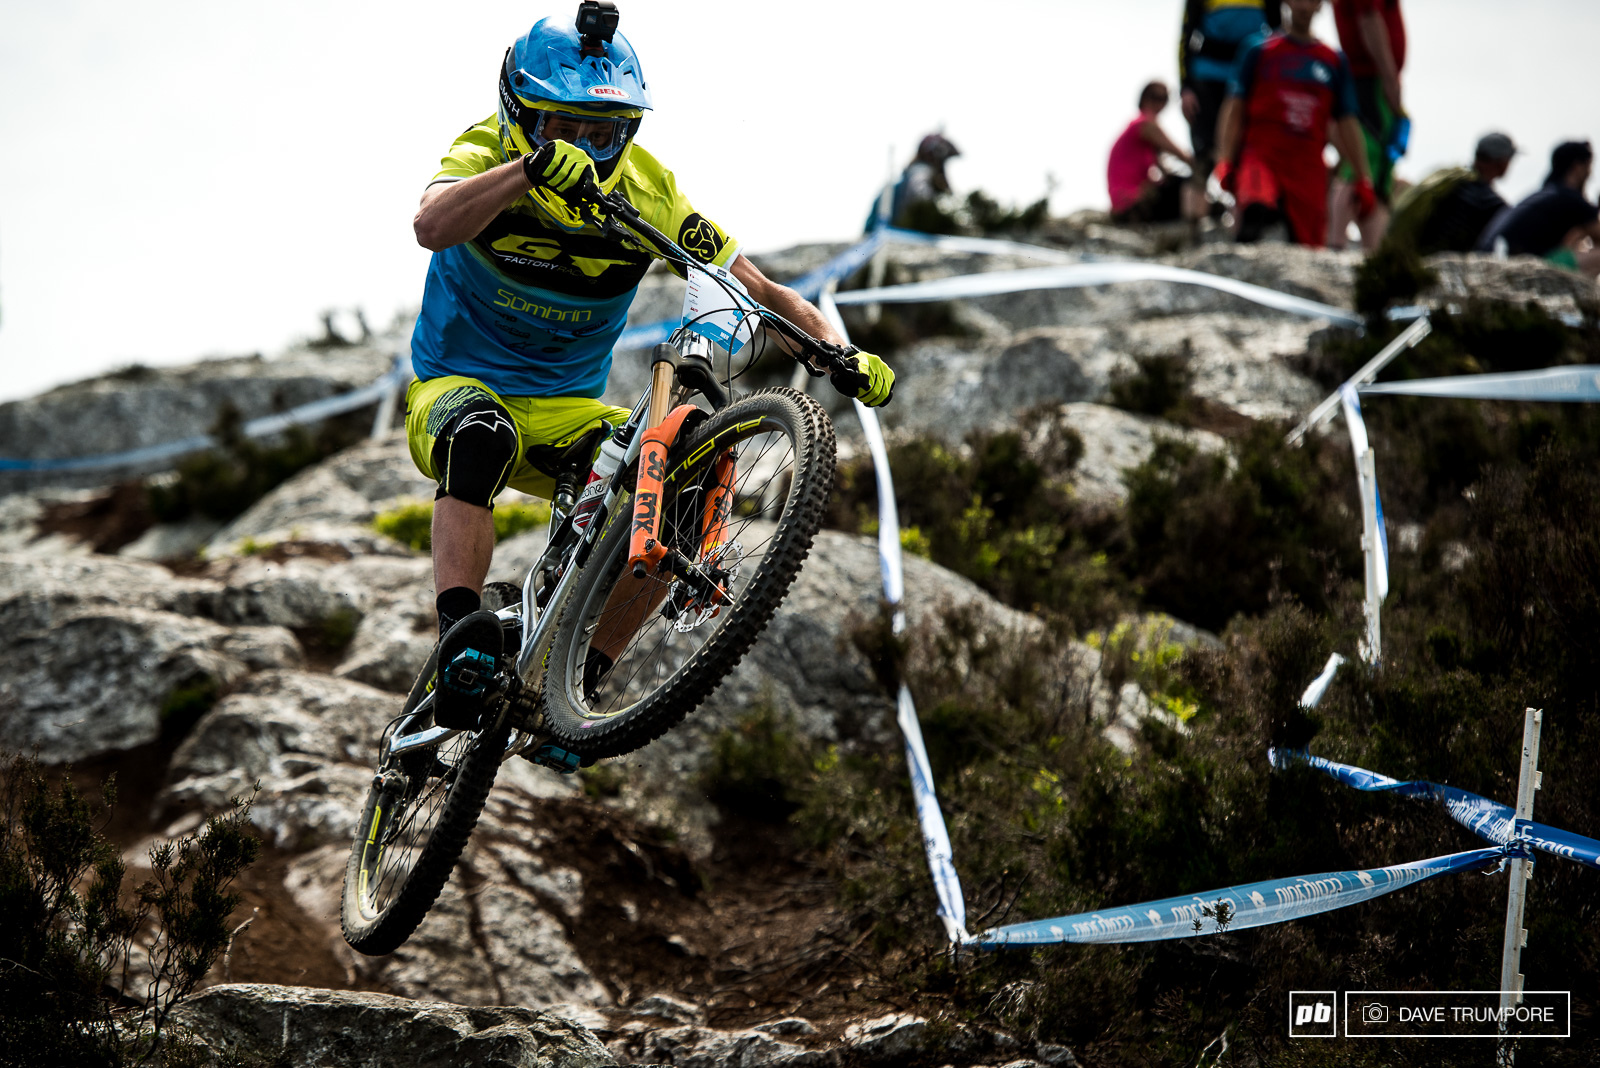 Where many riders struggle Martin Maes just pulls up and sends it on Stage 3.